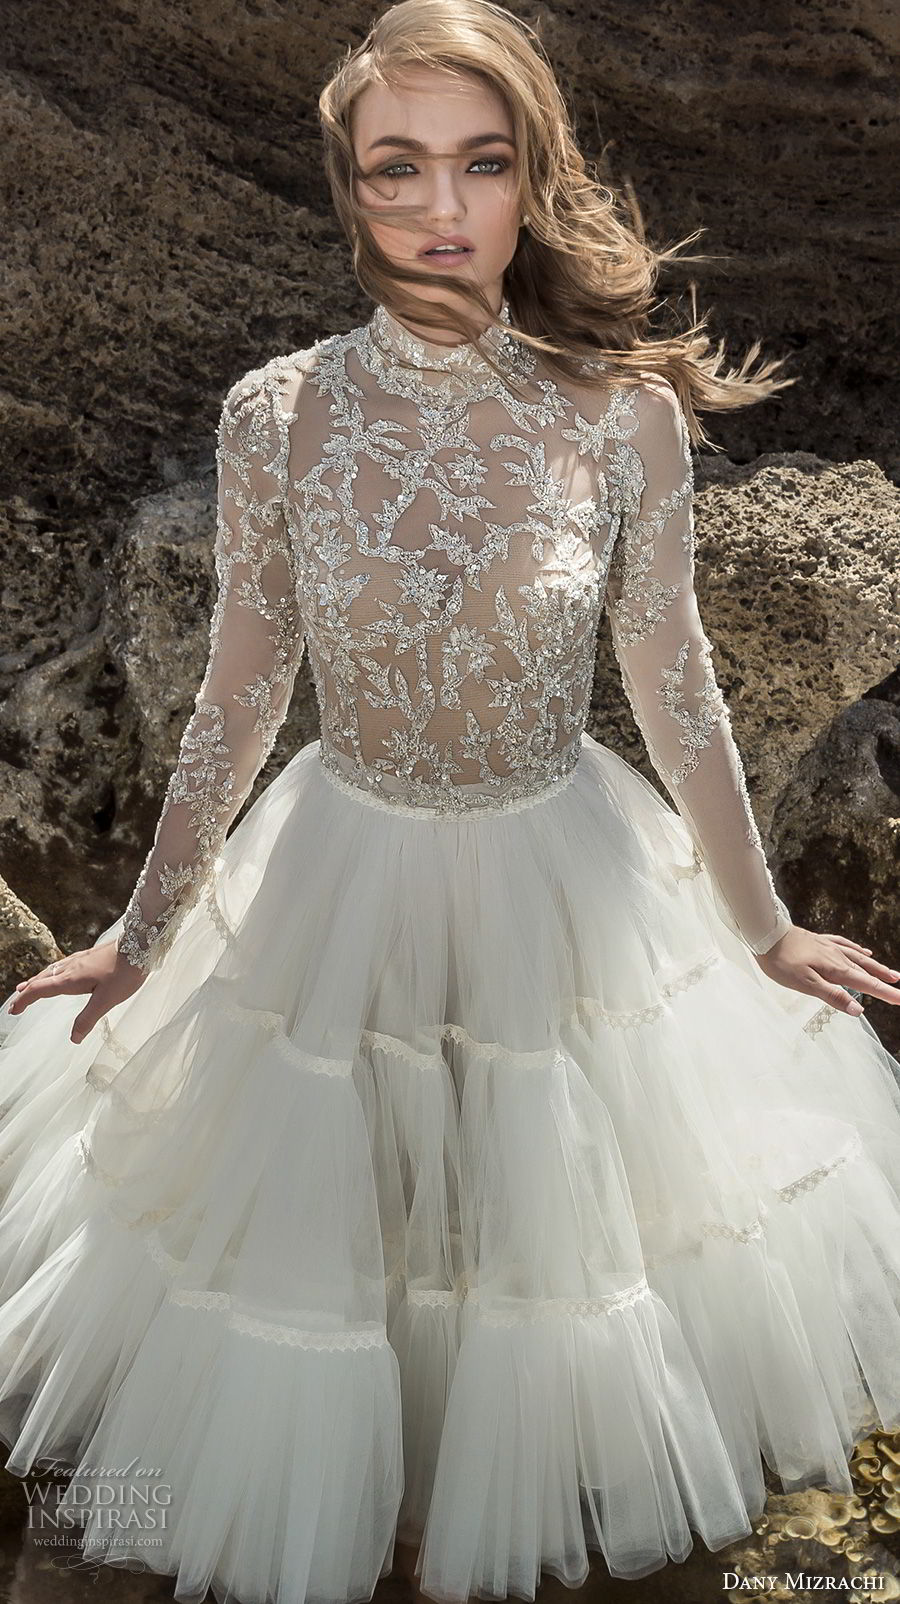 dany mizrachi 2018 bridal long sleeves high neck heavily embellished bodice tulle skirt glamorous above the knee short wedding dress (24) mv